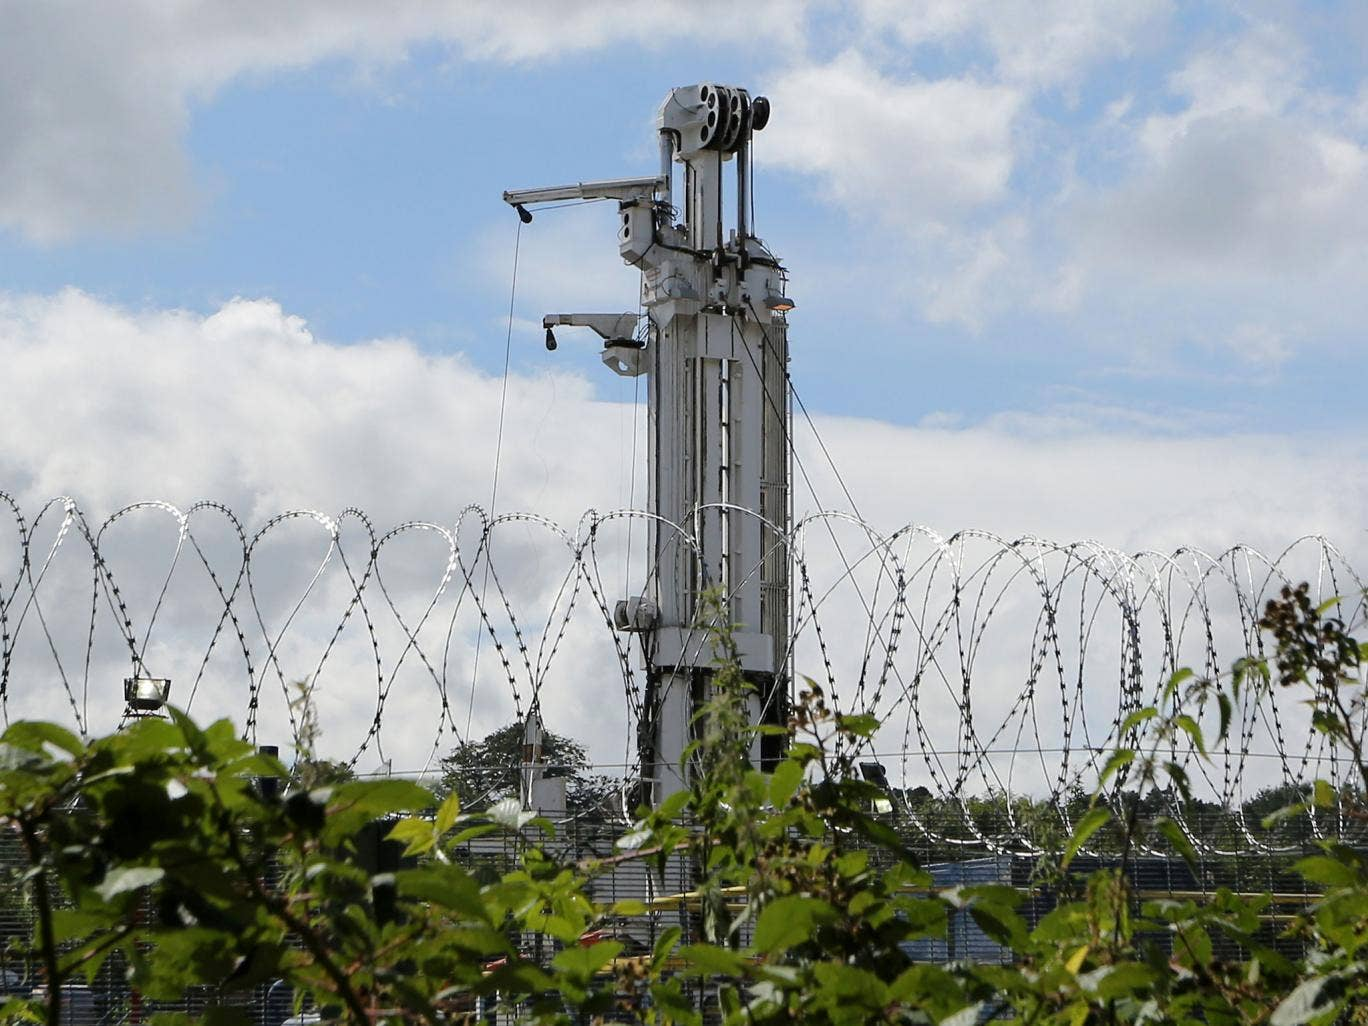 Drilling equipment at the Cuadrilla exploration drilling site in Balcombe